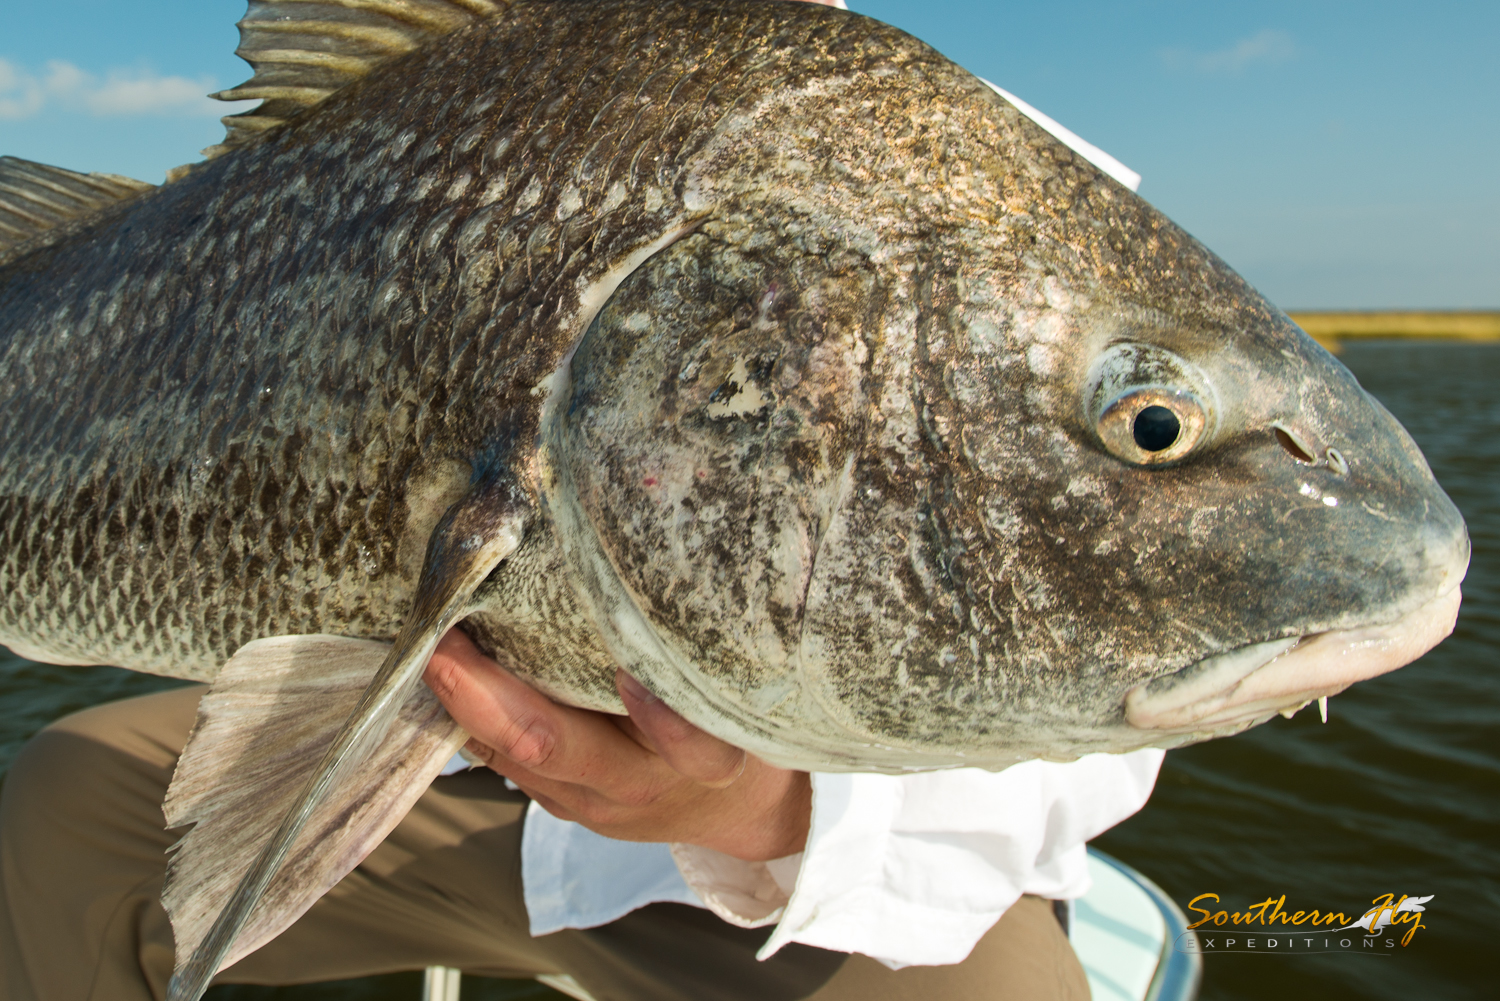 charter fly fishing New Orleans for blackdrum - Southern Fly Expeditions